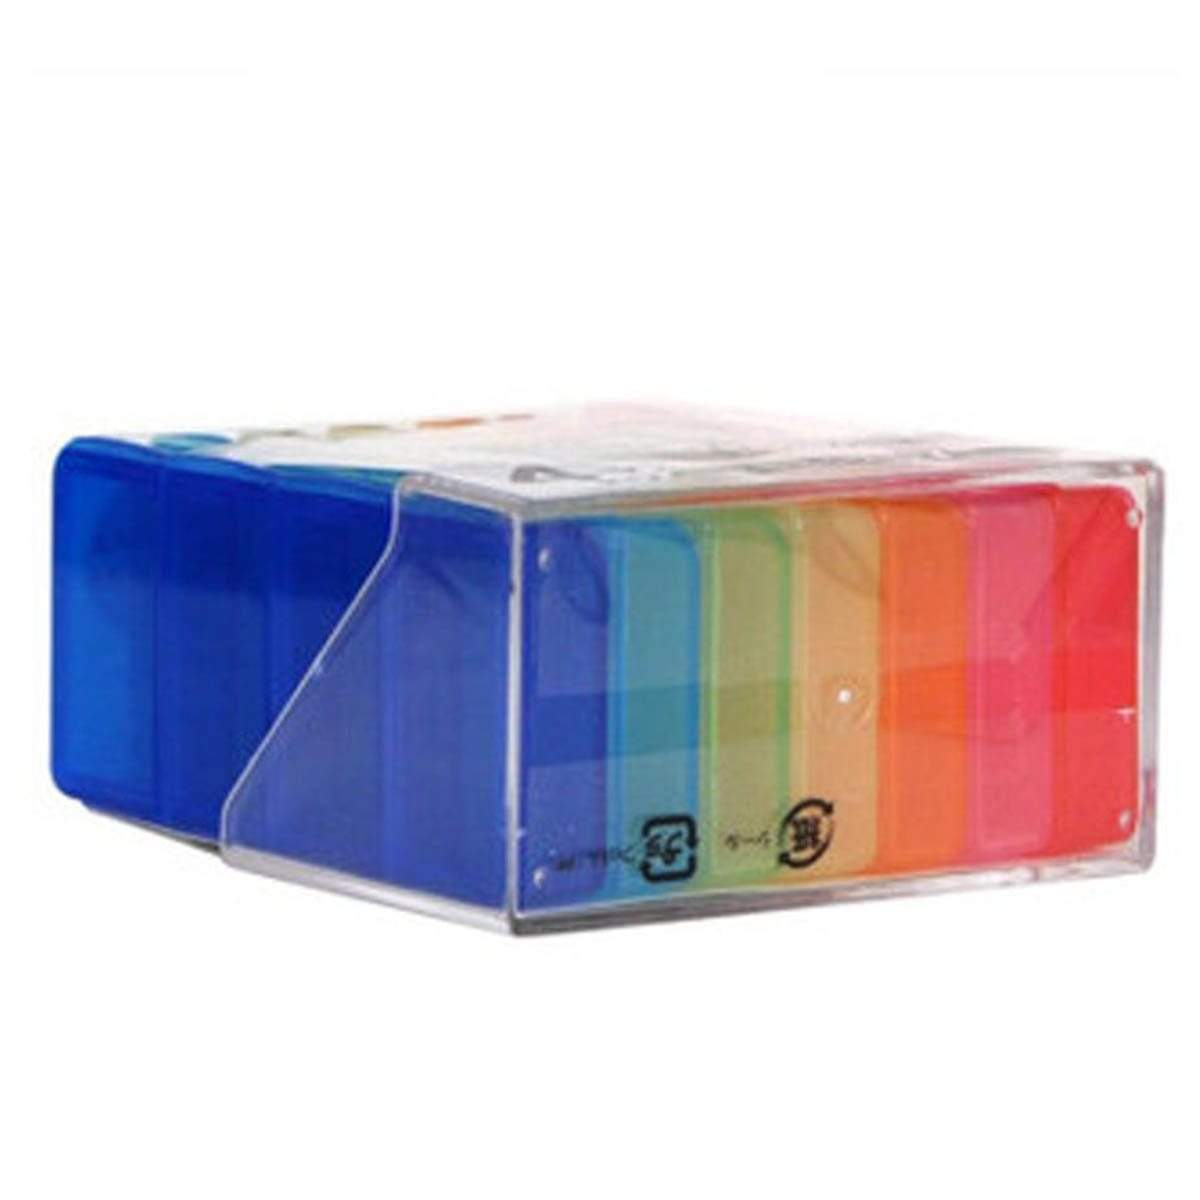 Japanese Plastic Portable Pill Case 7 Storage Trays